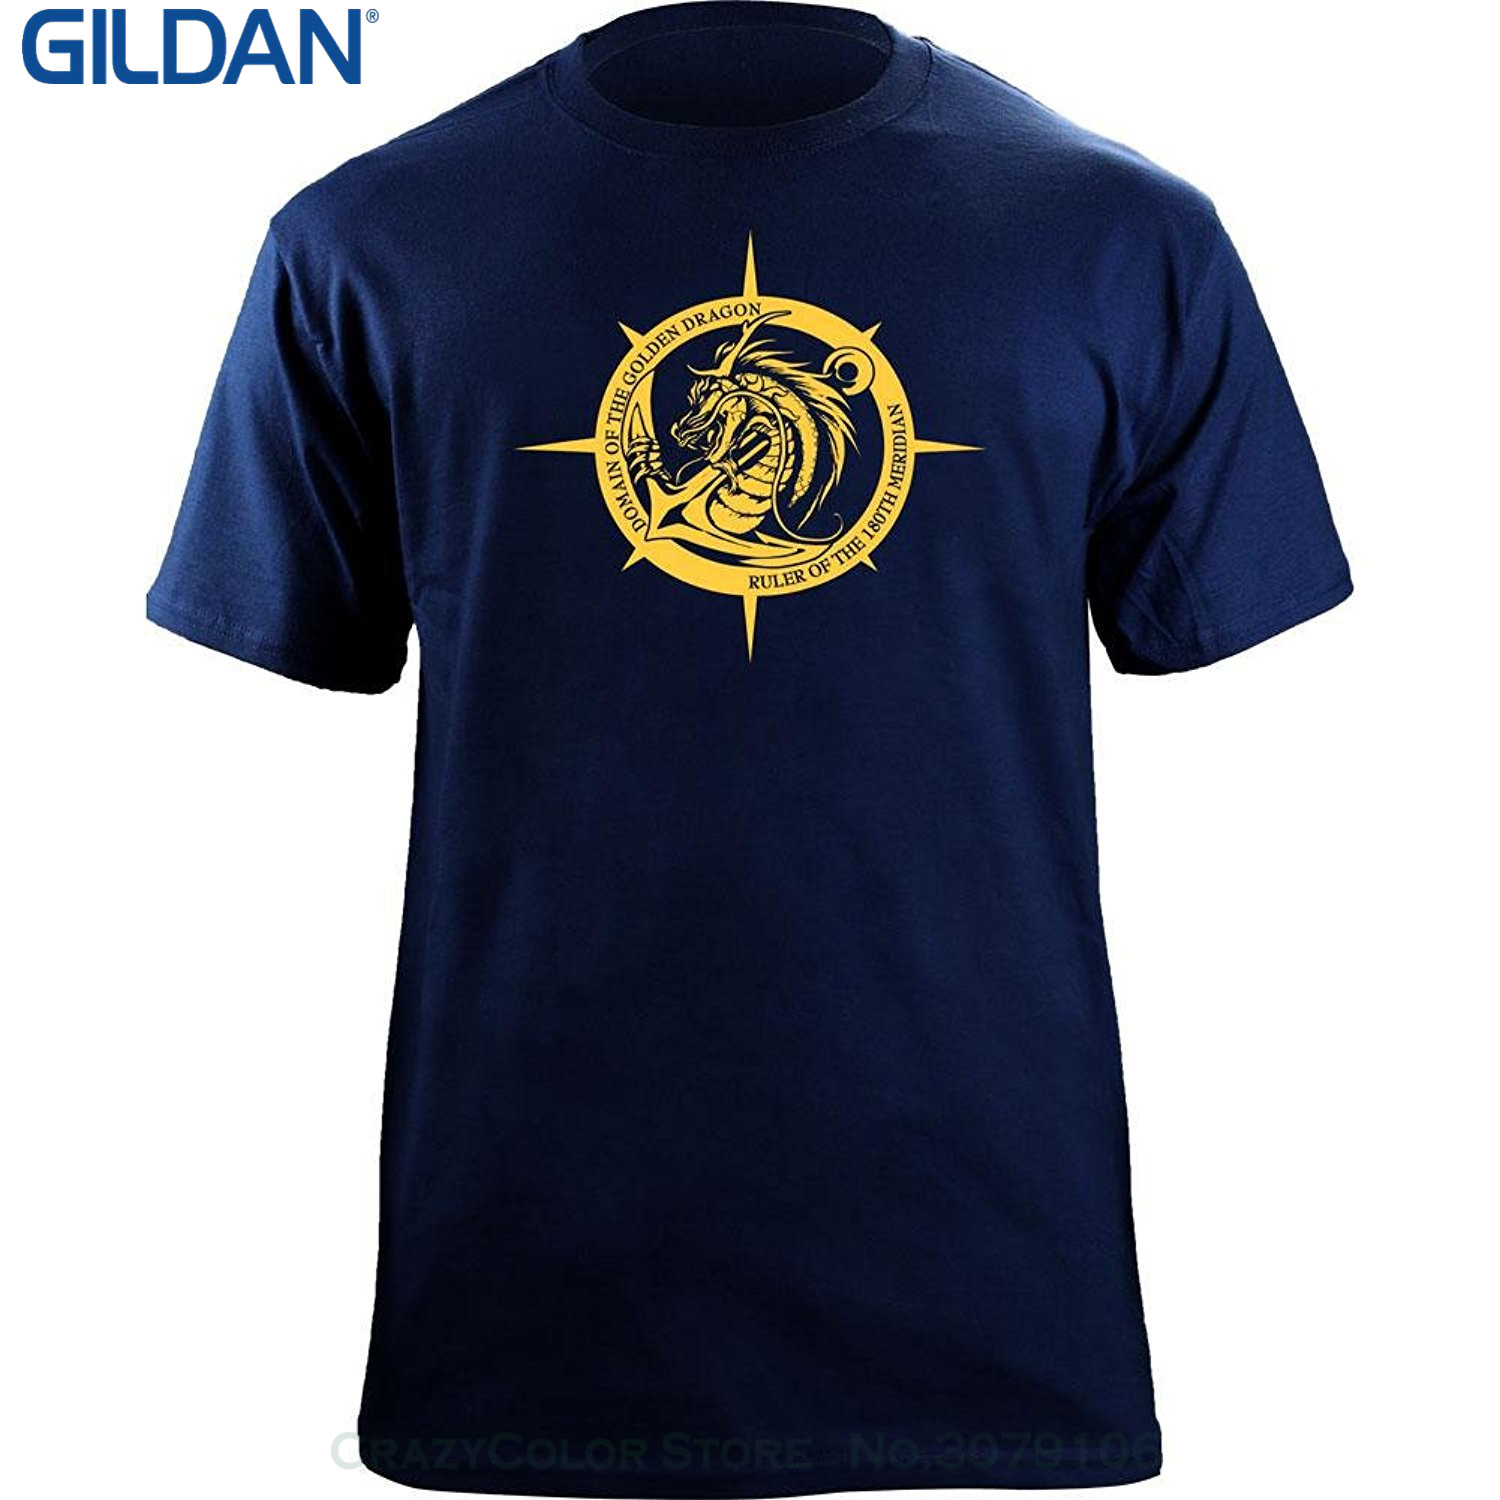 GILDAN Fashion Men Printed T Shirts Original Domain Of The Golden Dragon Navy Veteran T-shirt